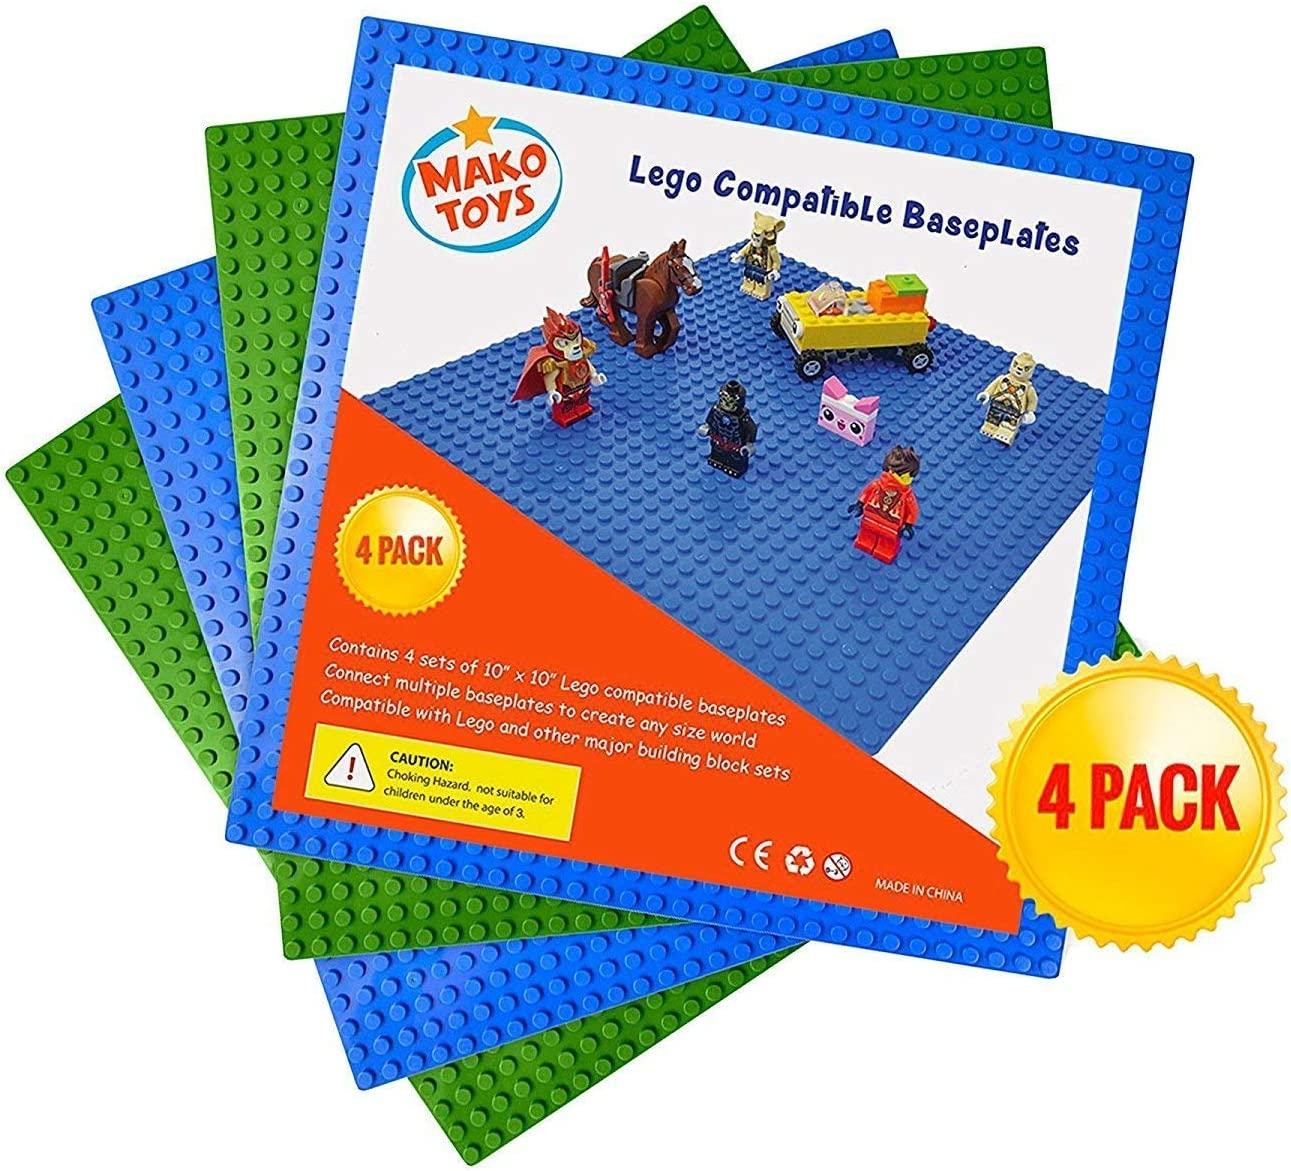 """Lego Compatible Baseplates (4 pieces of 10"""" x 10"""") in Blue and Green, Works with Major Brick Building Sets, Wonderful Plate for Kids"""